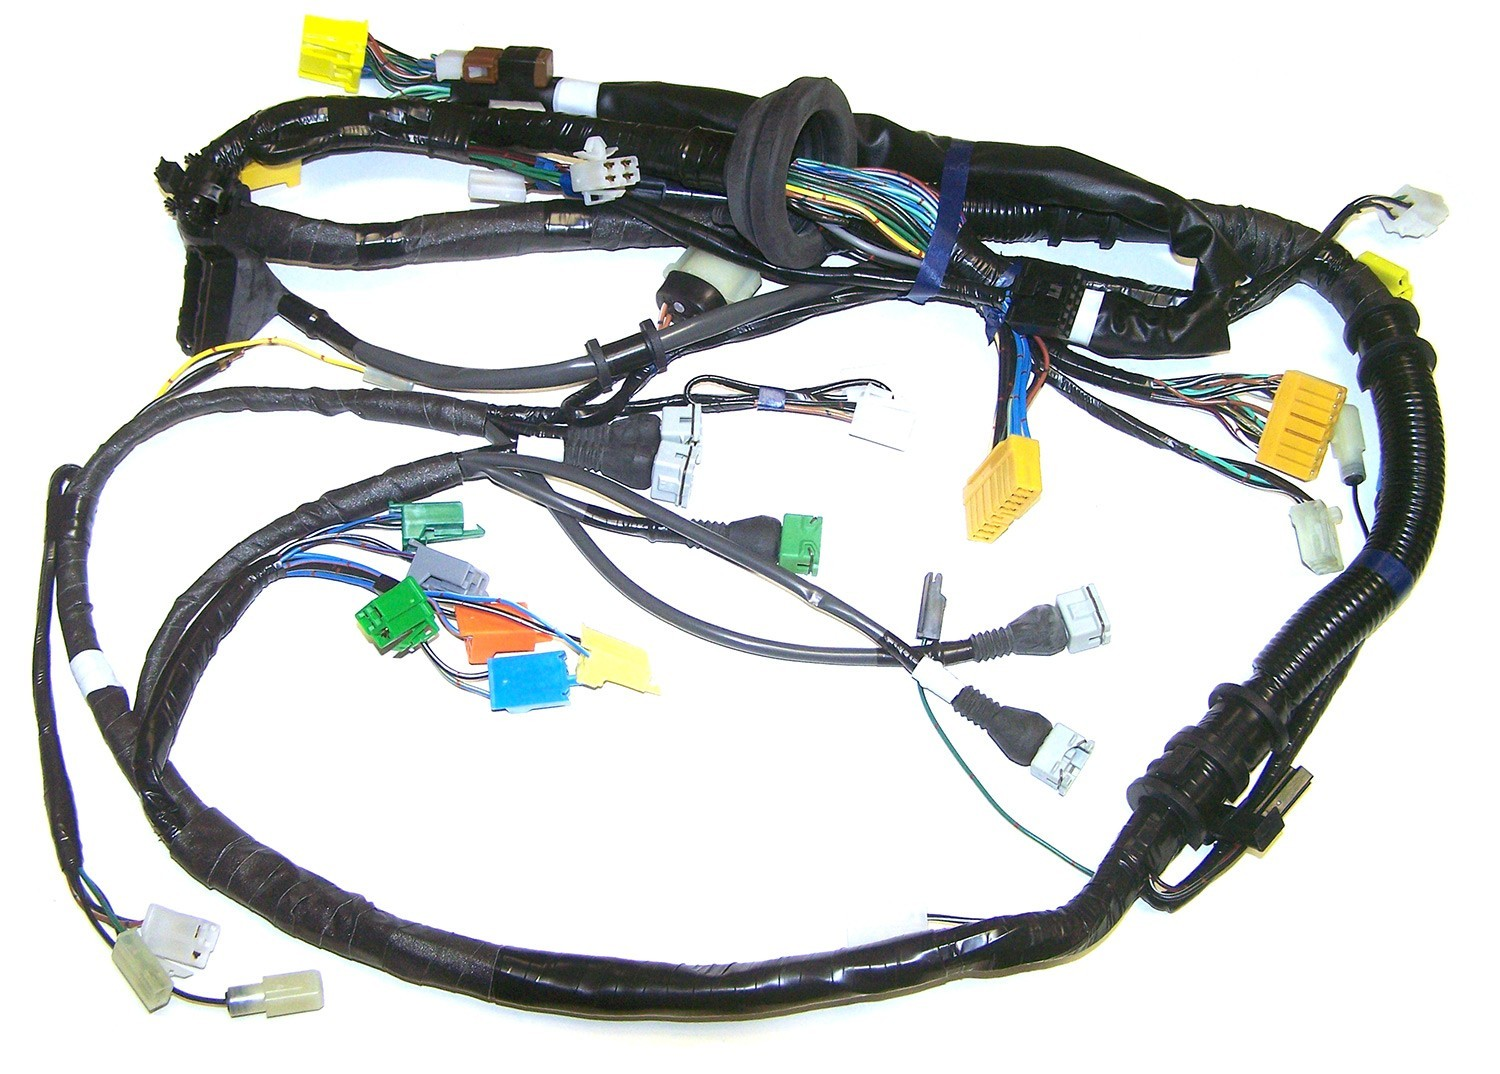 N332 18 051KDetail 87 88 turbo rx7 engine wiring harness (n332 18 051k) engine wiring harness at bayanpartner.co